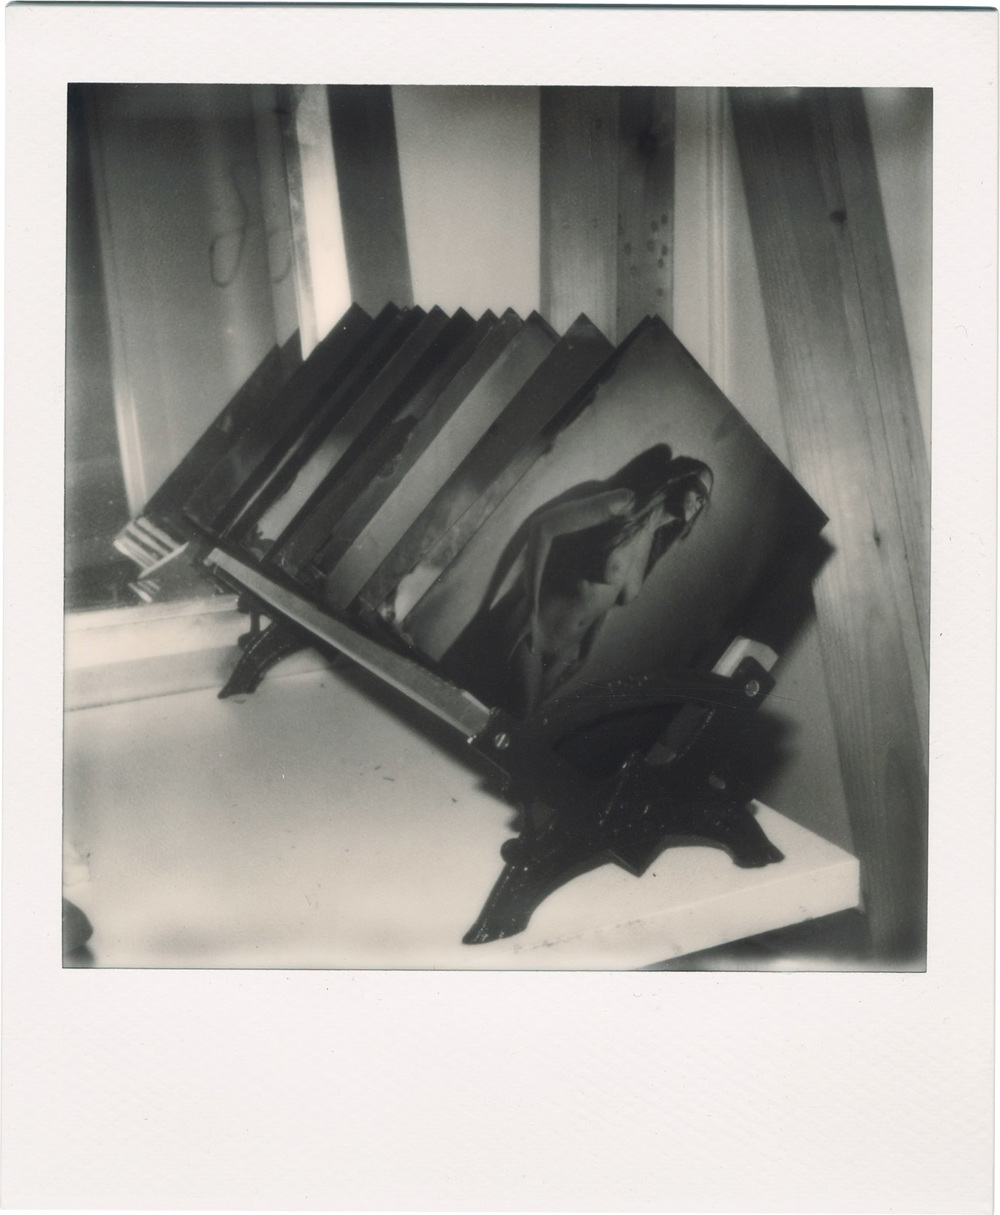 The plate rack.  Black and white Polaroid.